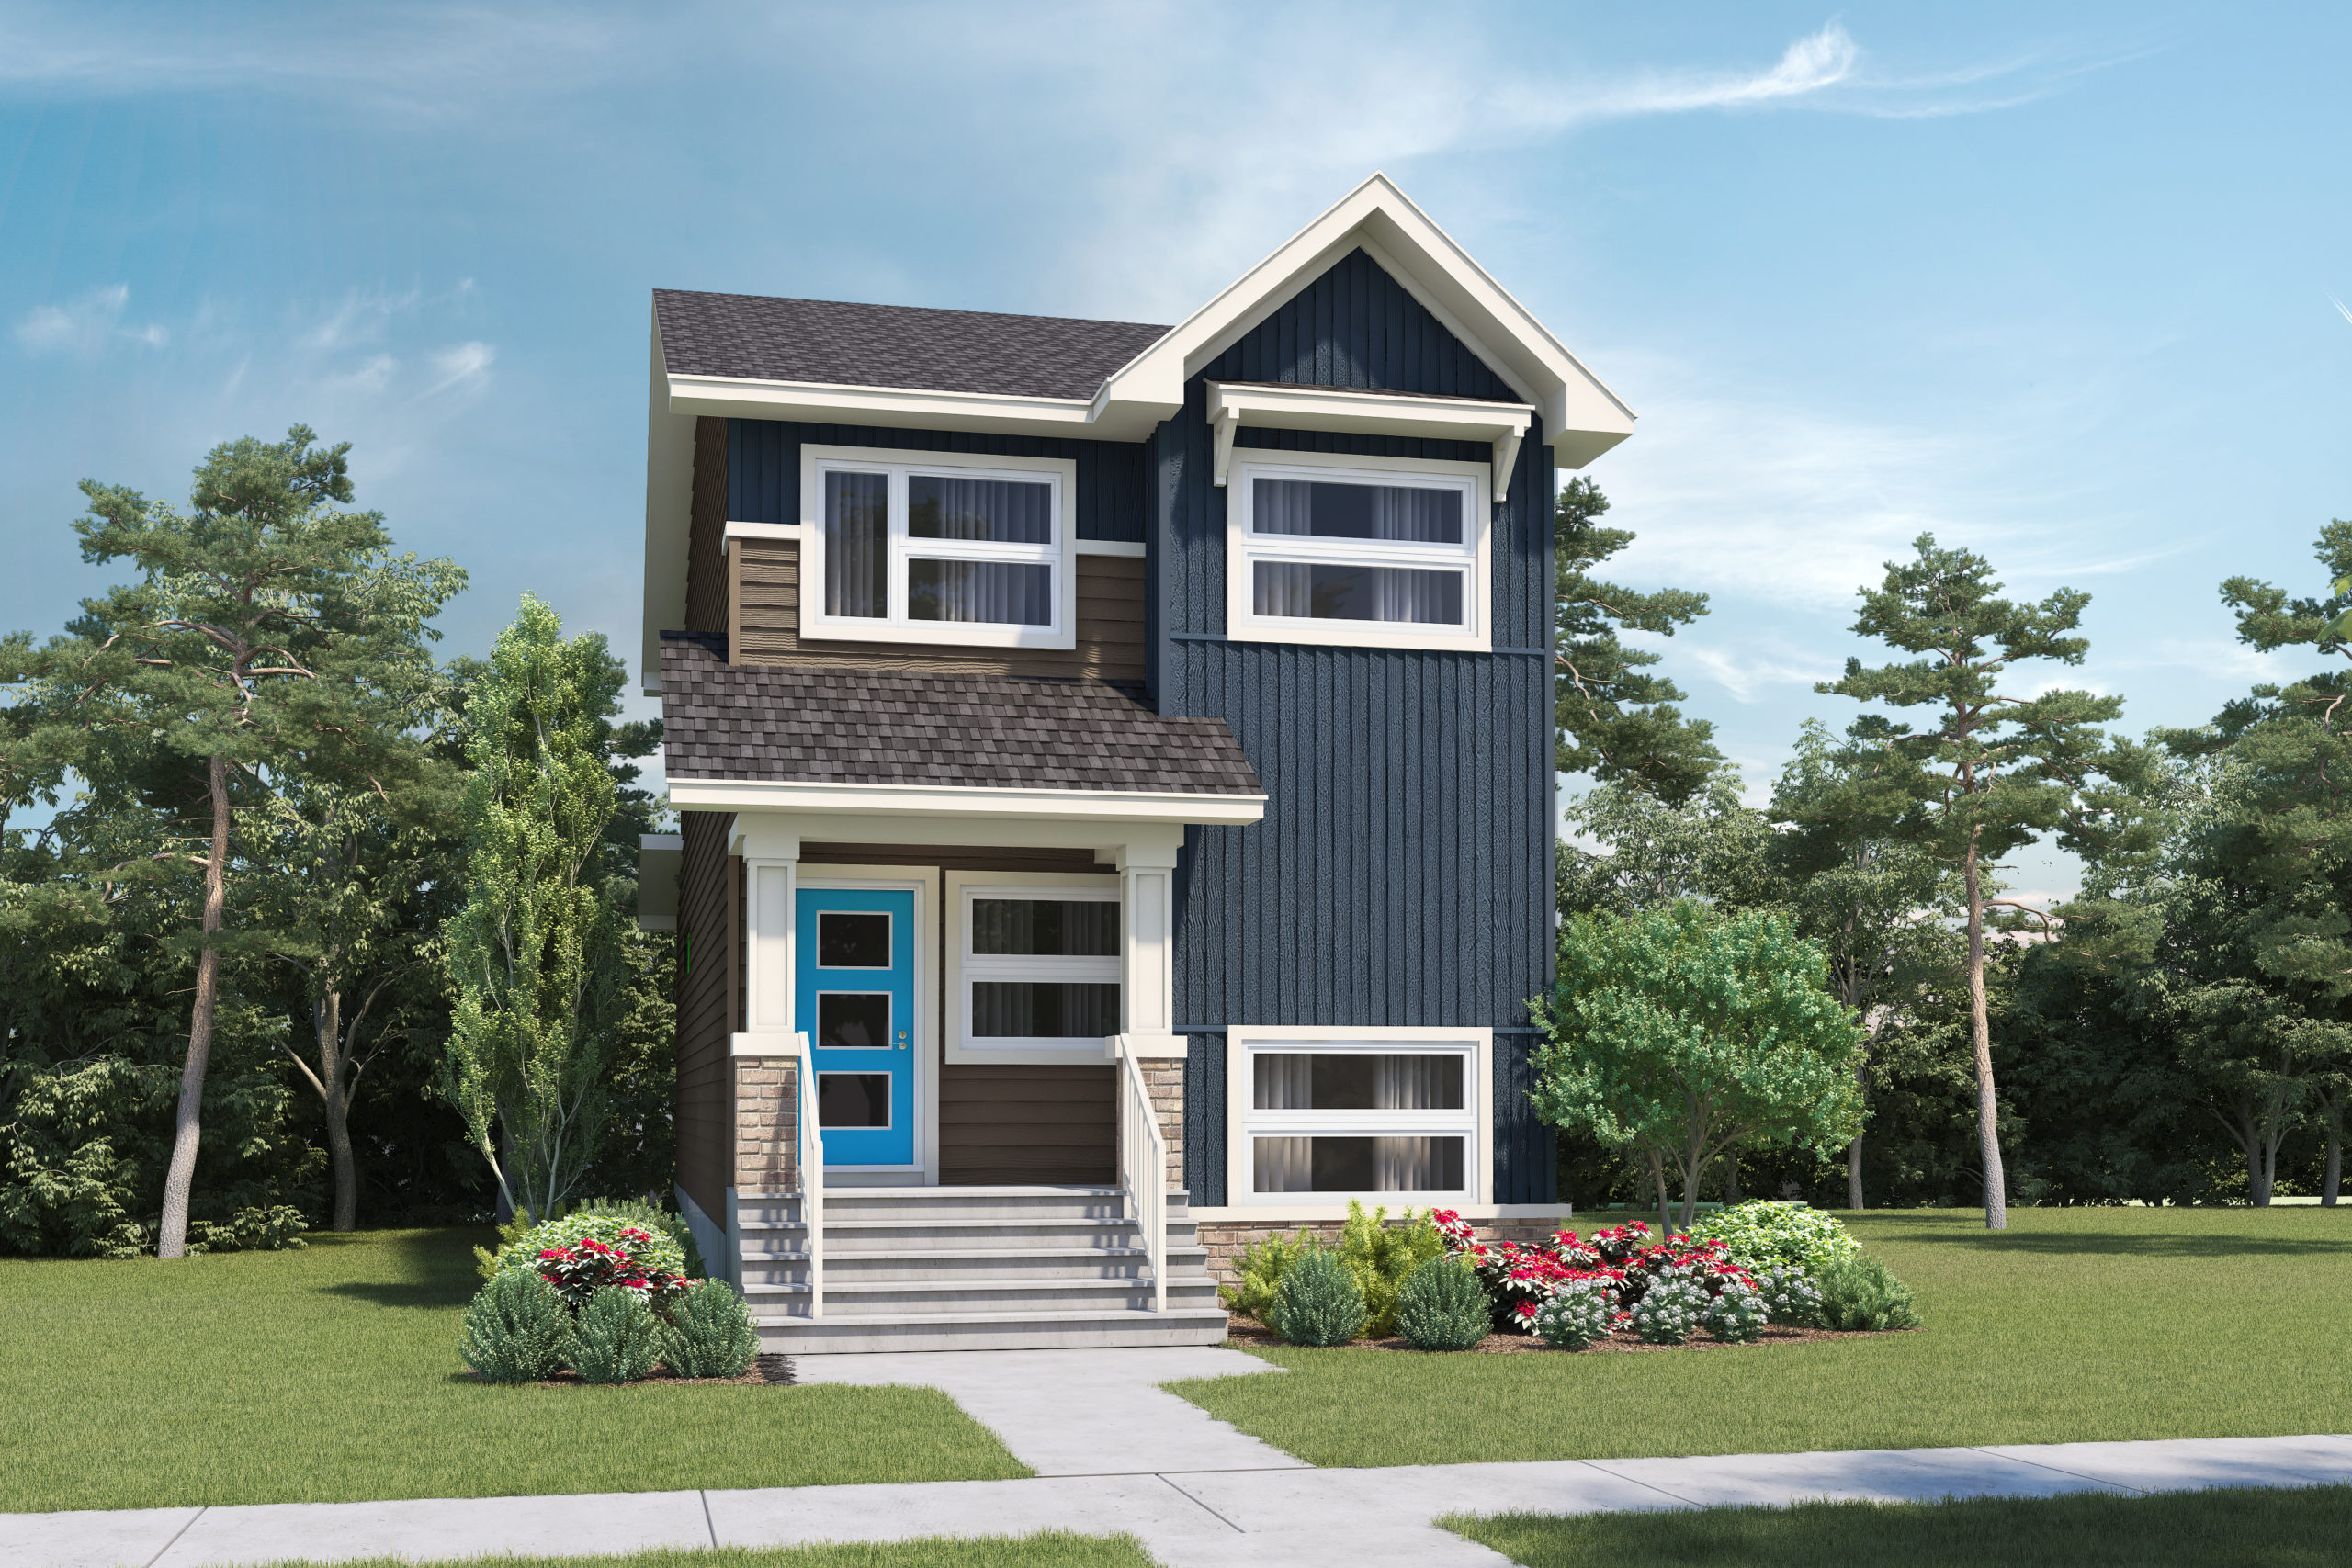 A modern prairie laned home with detached garage features white window trim and multicolored siding, including brick detail